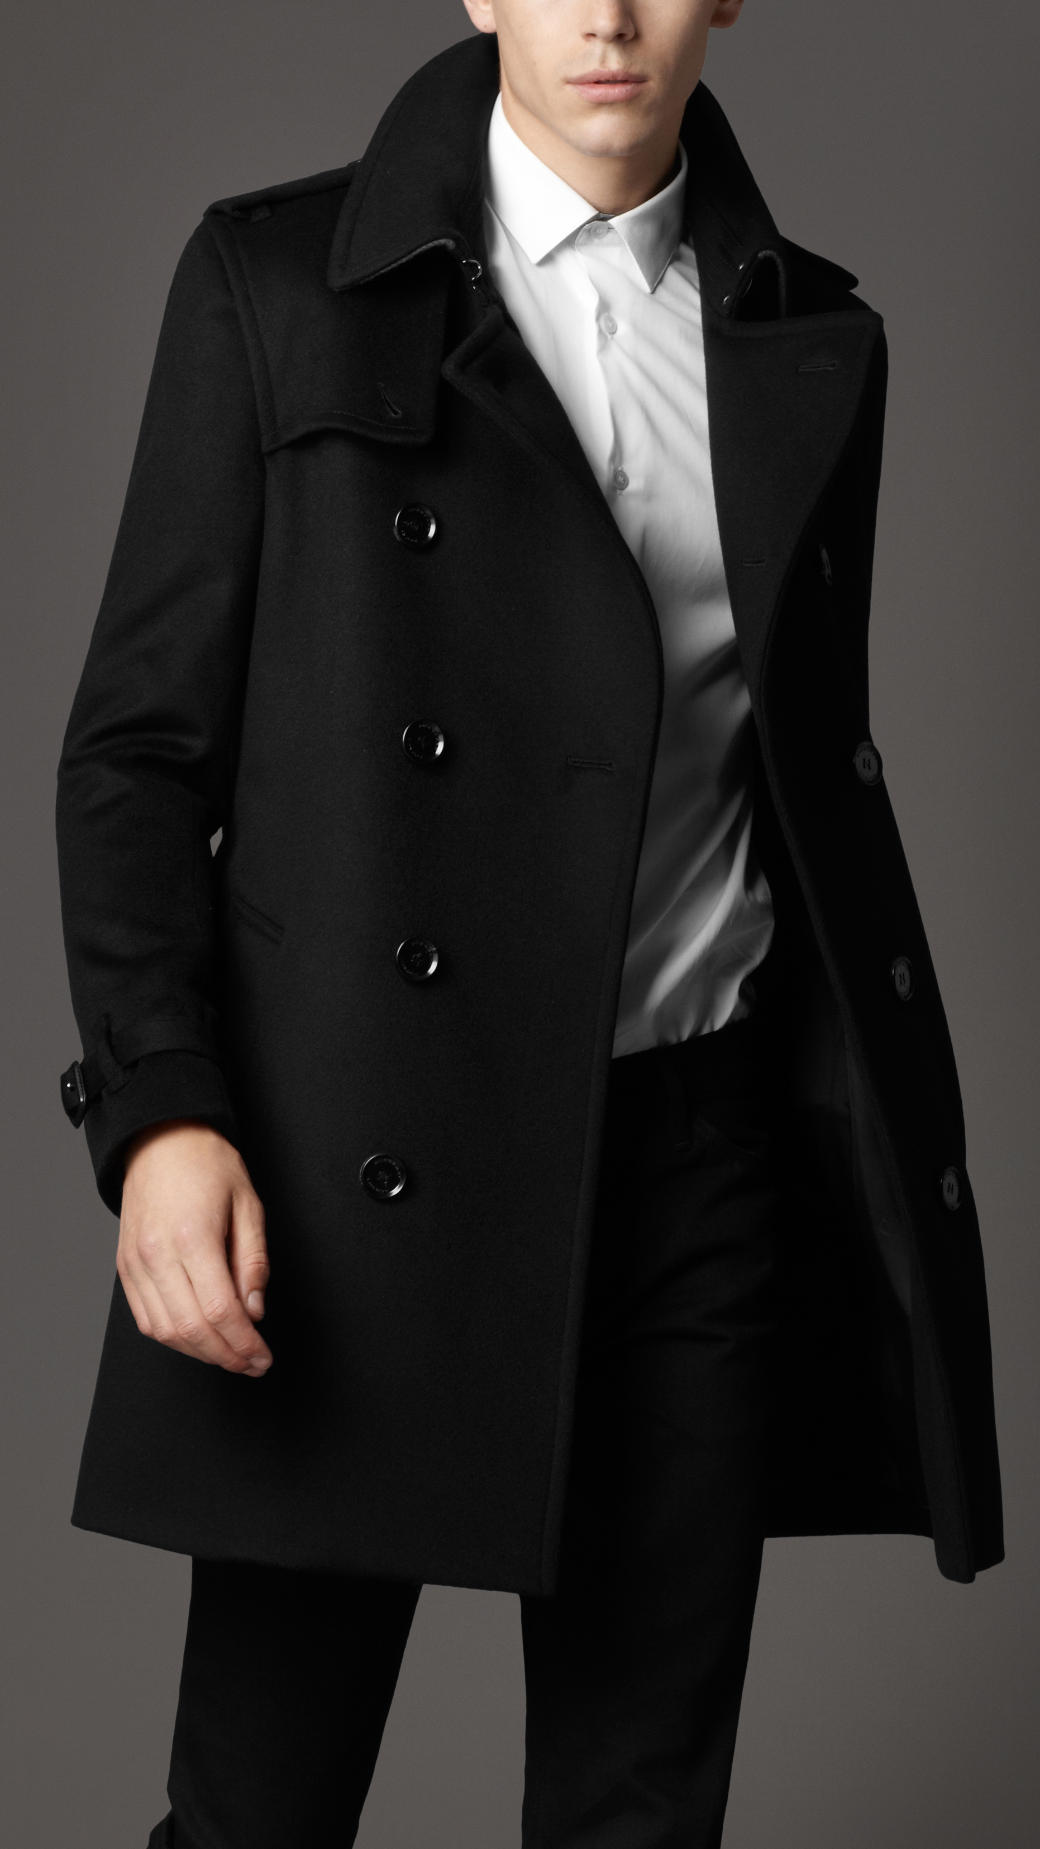 A premium soft cowhide leather men's trench coat with removable fur collar. This quality coat also comes with removable fur lining as well as a removable belt. This trench is ideal for cold weather with or without the collar attached. Other features include decorative button cuff straps, long front.